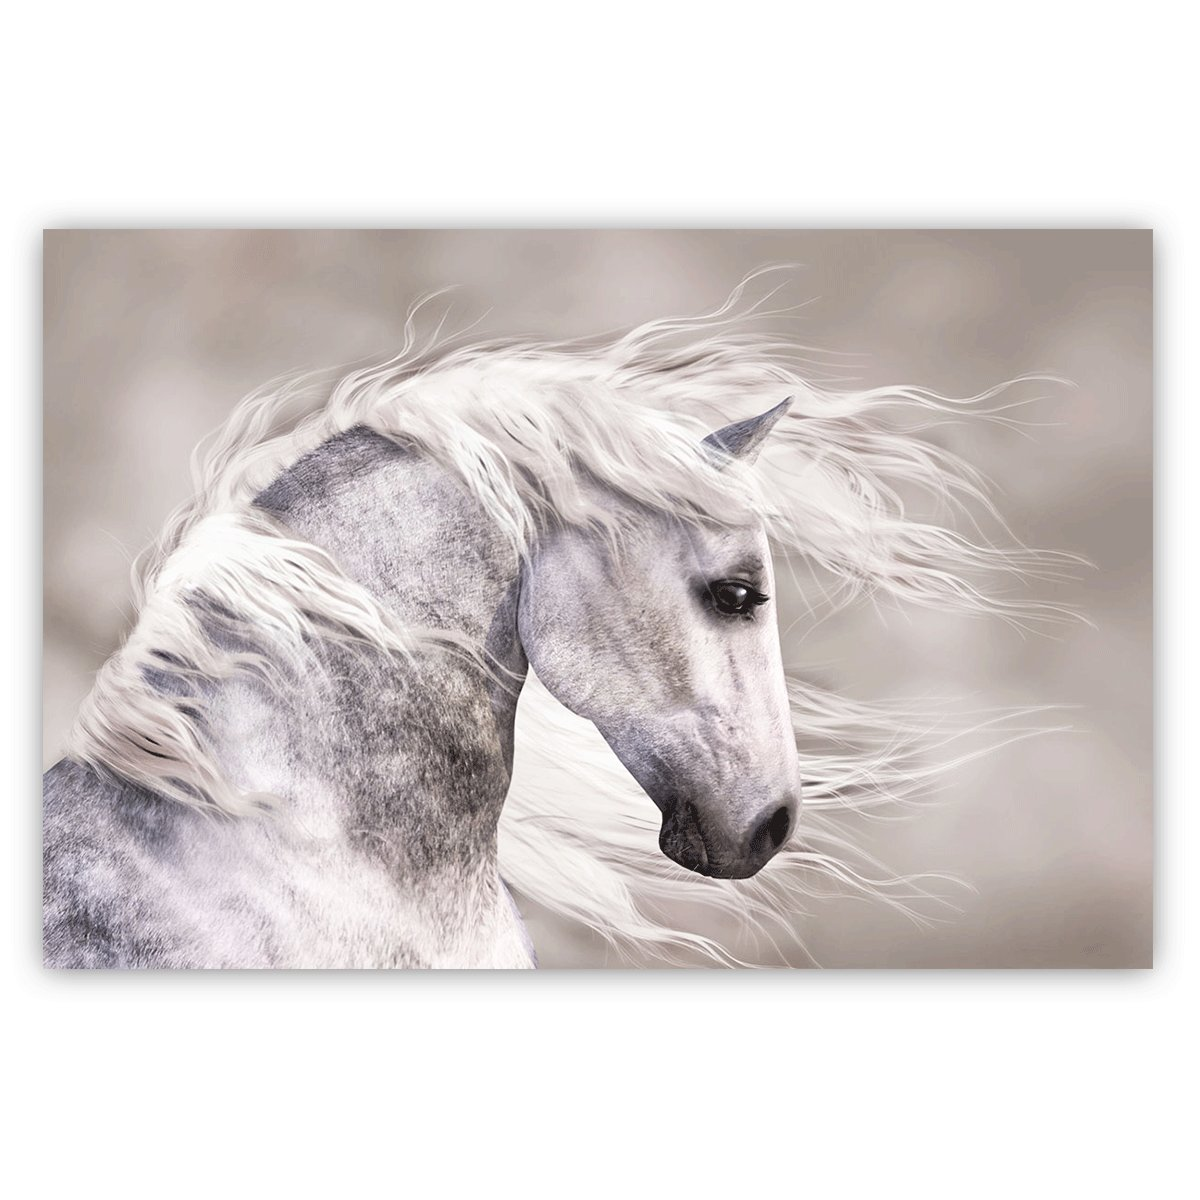 Studio 500 Museum Grade Canvas Art - Natures Beauty The Wild White Stallion, Global Collection, 48'' x 32'' High Resolution Giclee Printing, H0027, Ready to Hang, Made in The USA